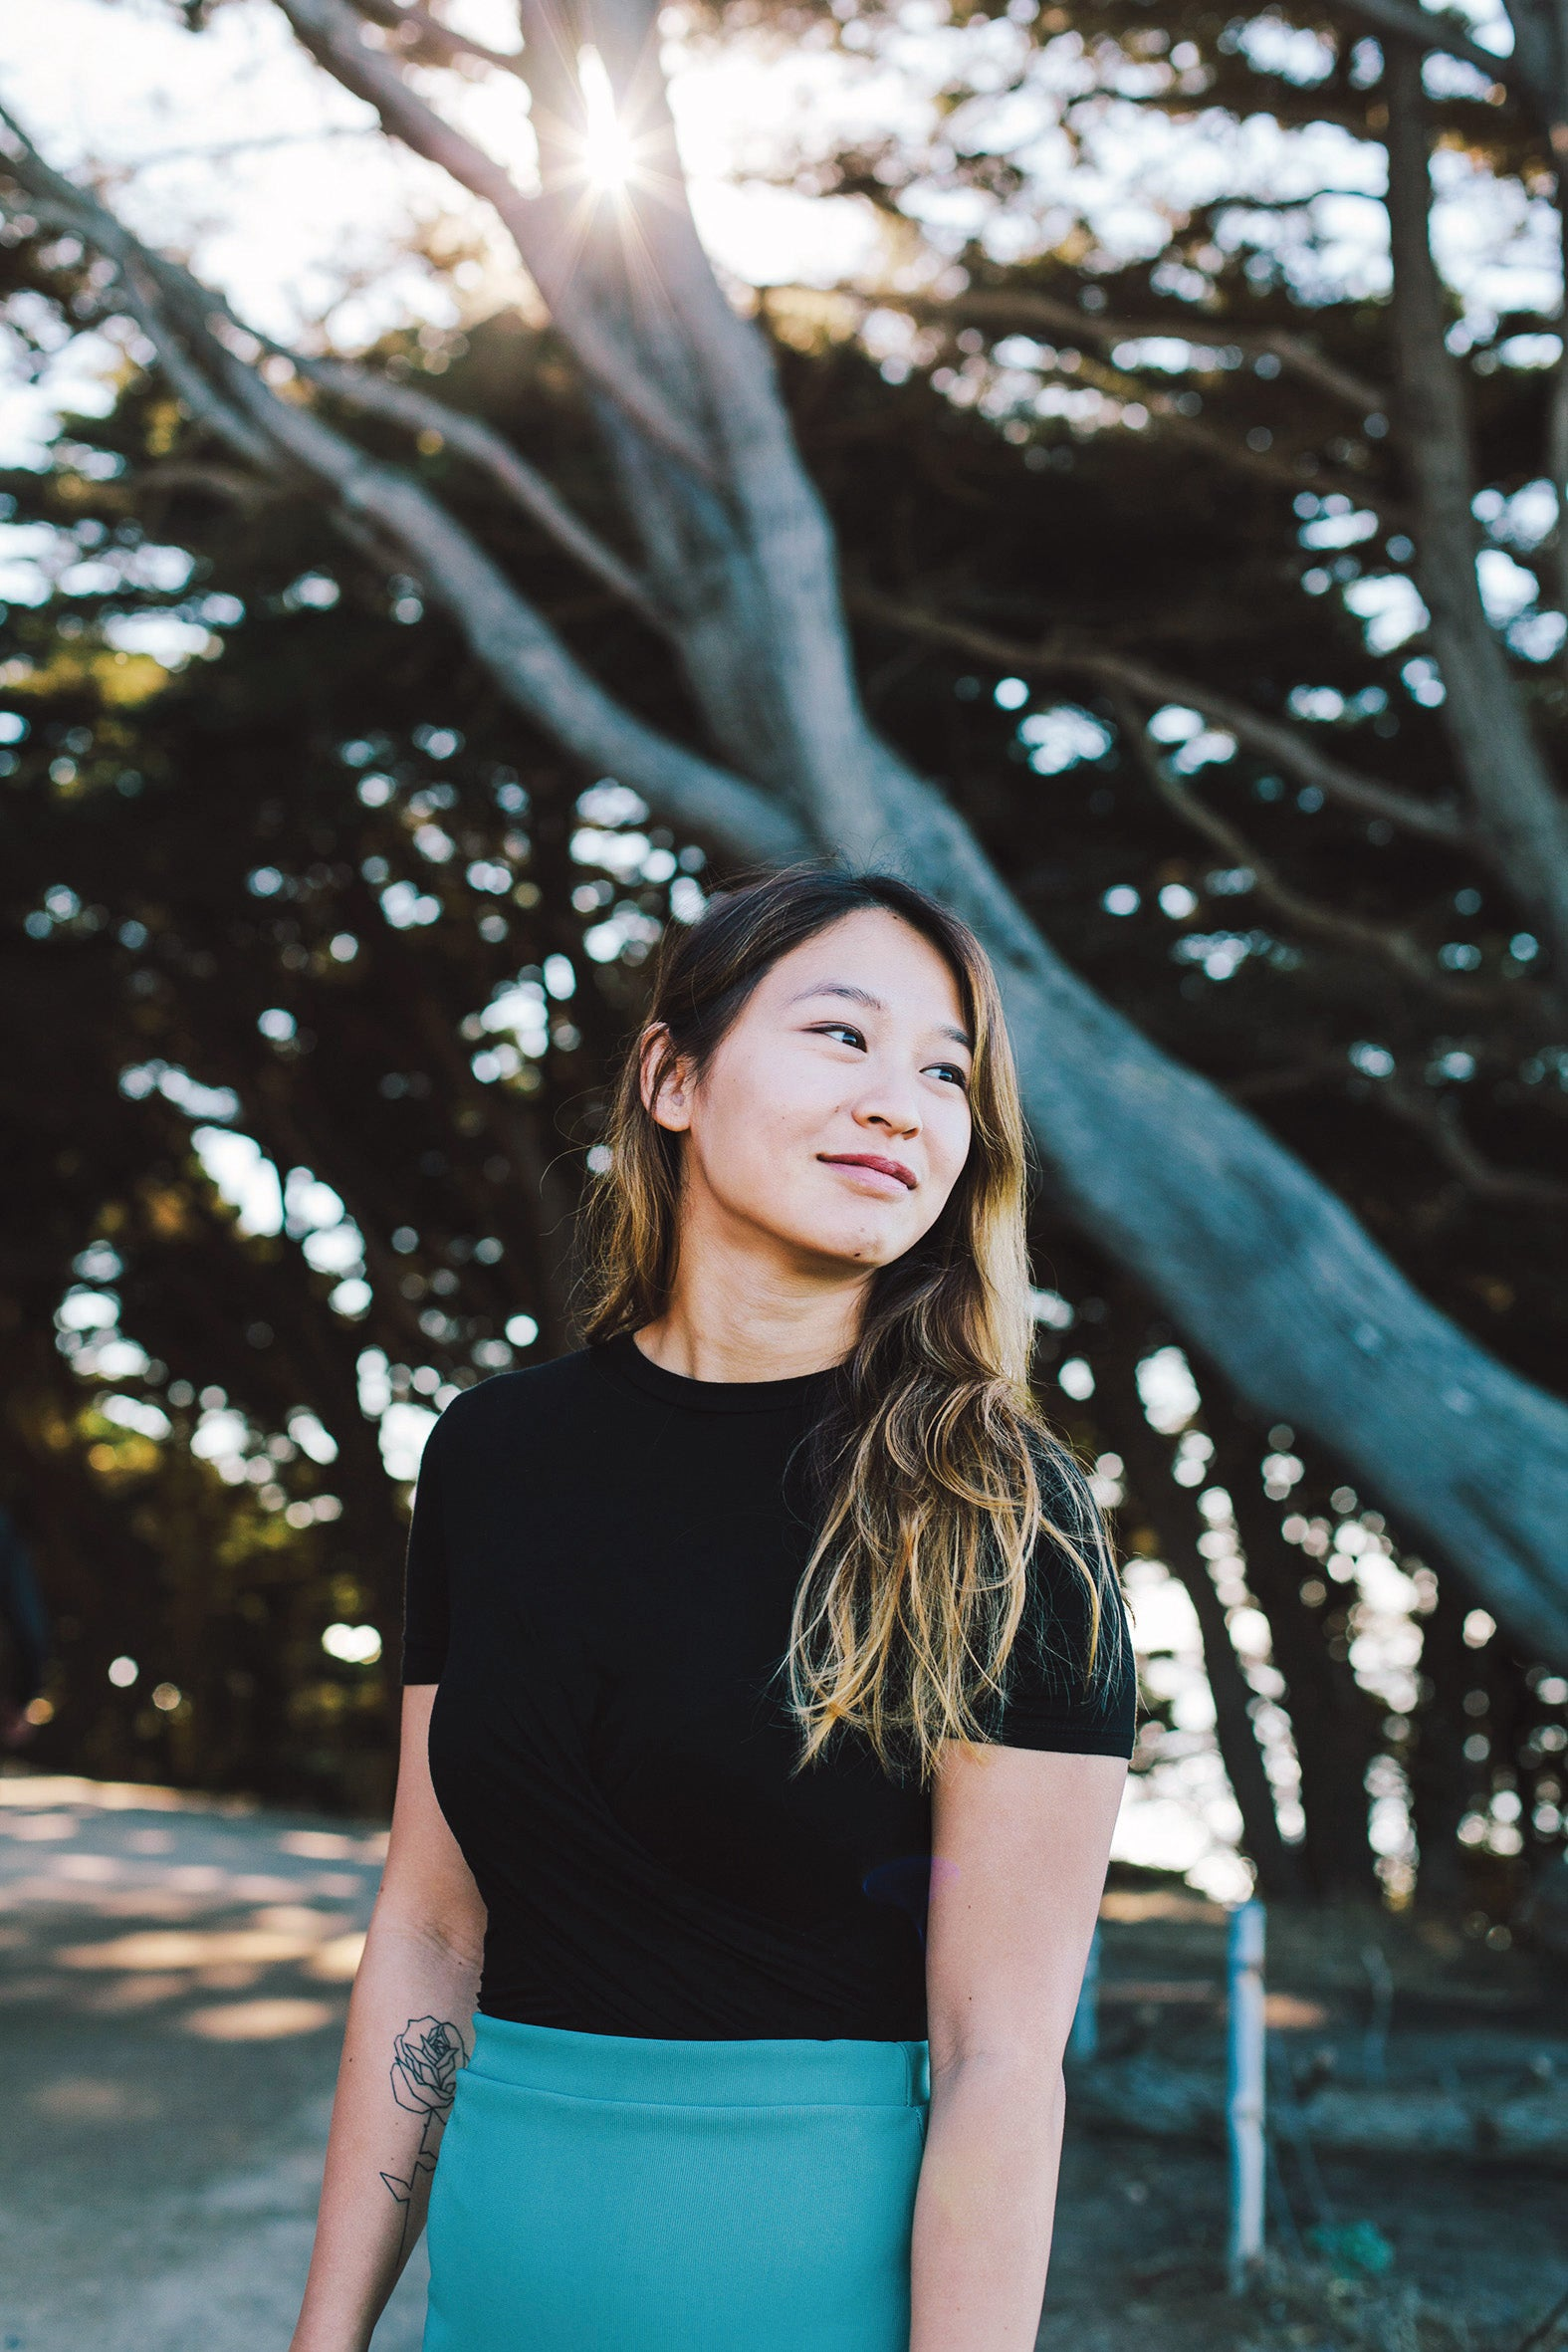 """Wendy Liu: """"Silicon Valley didn't create the pandemic, but they're profiting from it"""""""